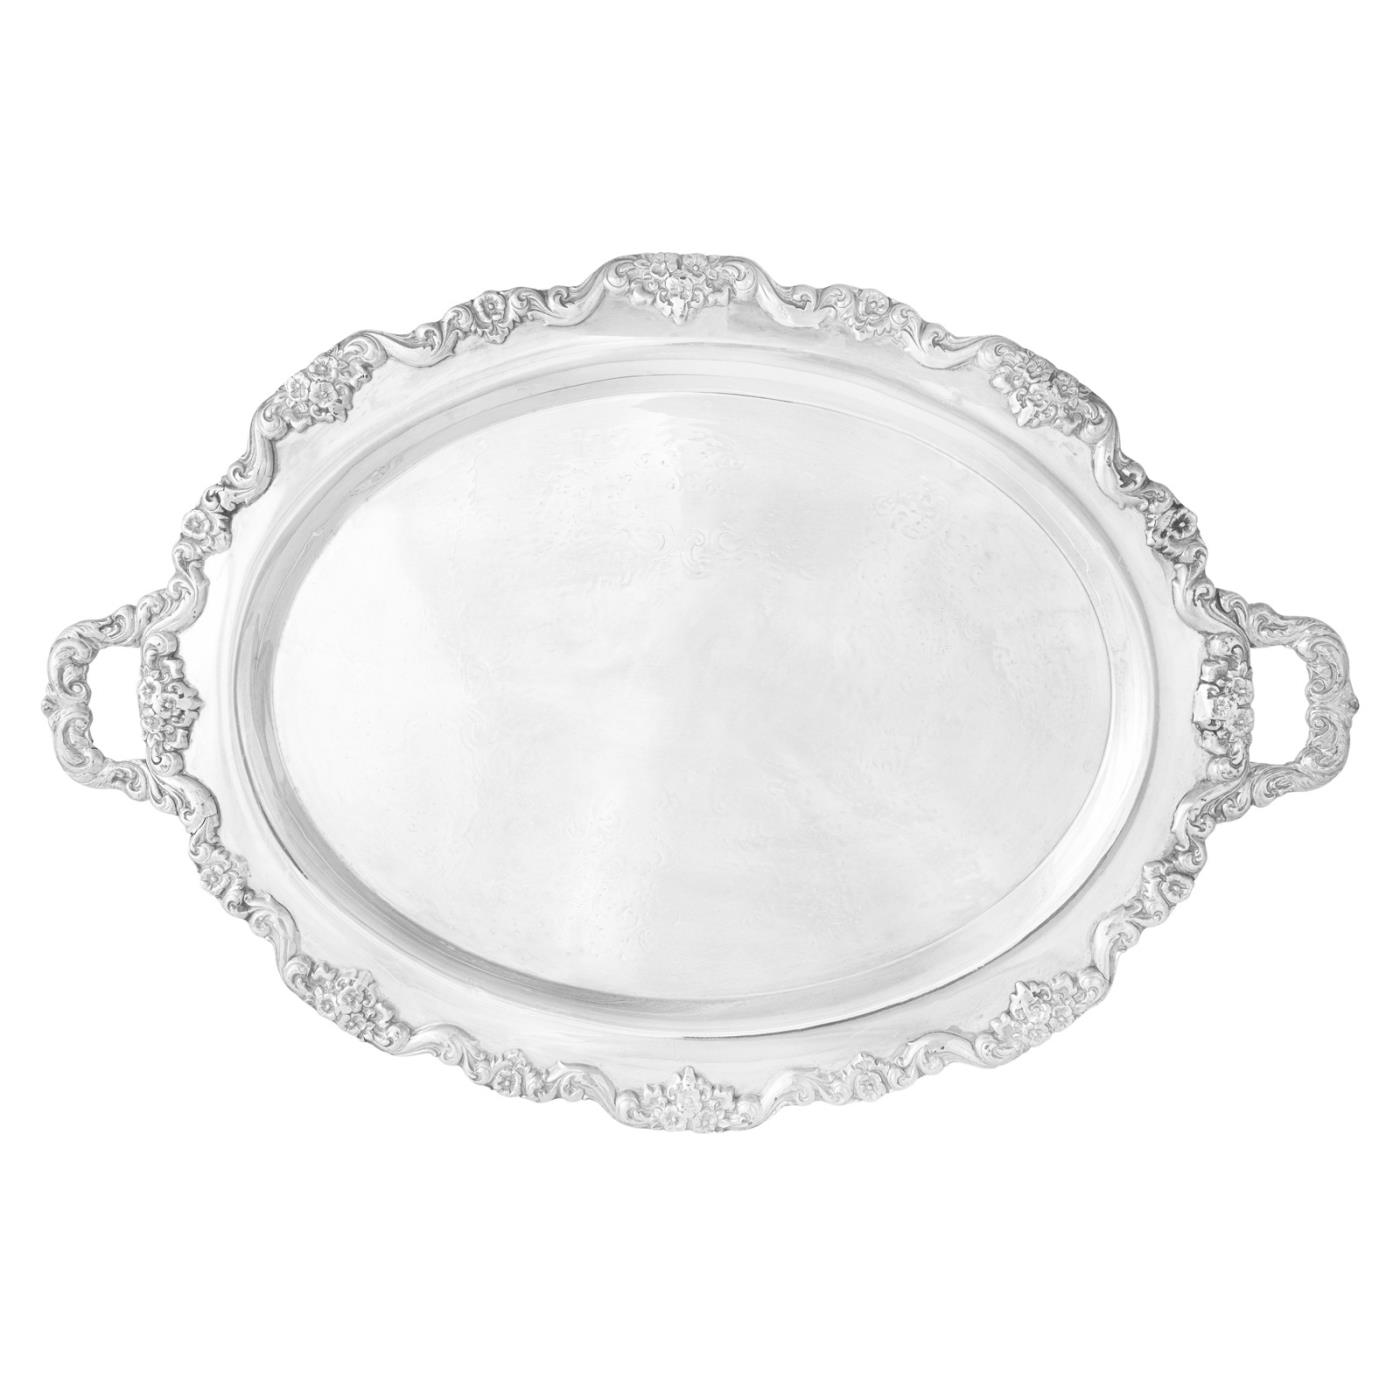 Silver Oval Tray With Handles